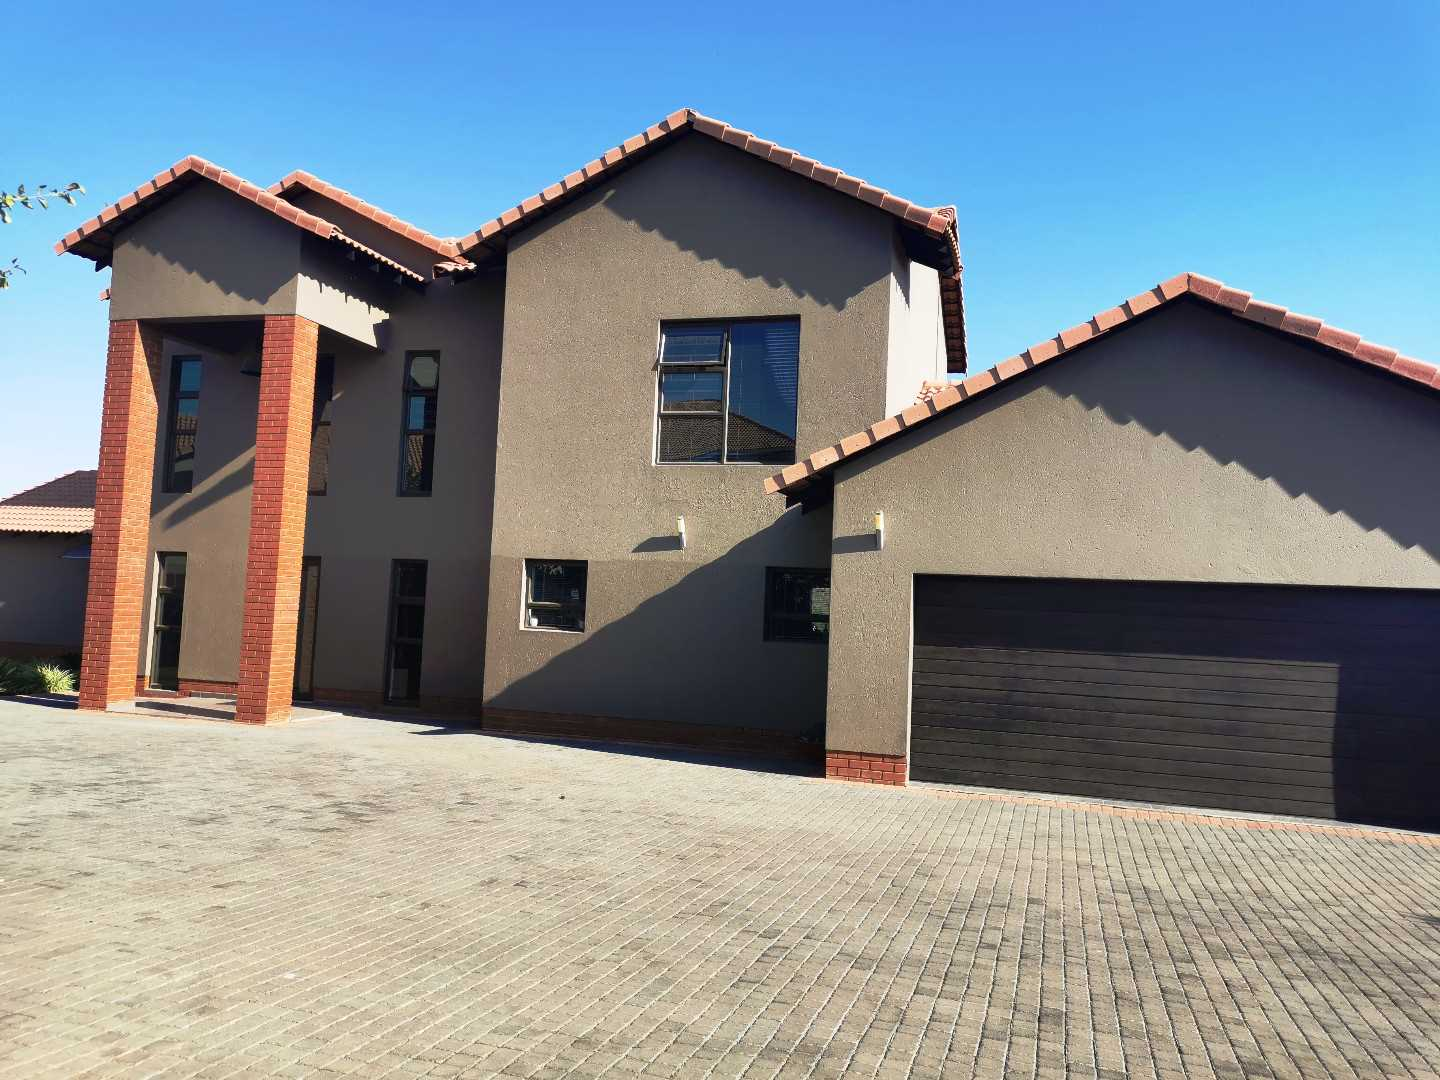 On Show by Appointment. Modern and Secure family house